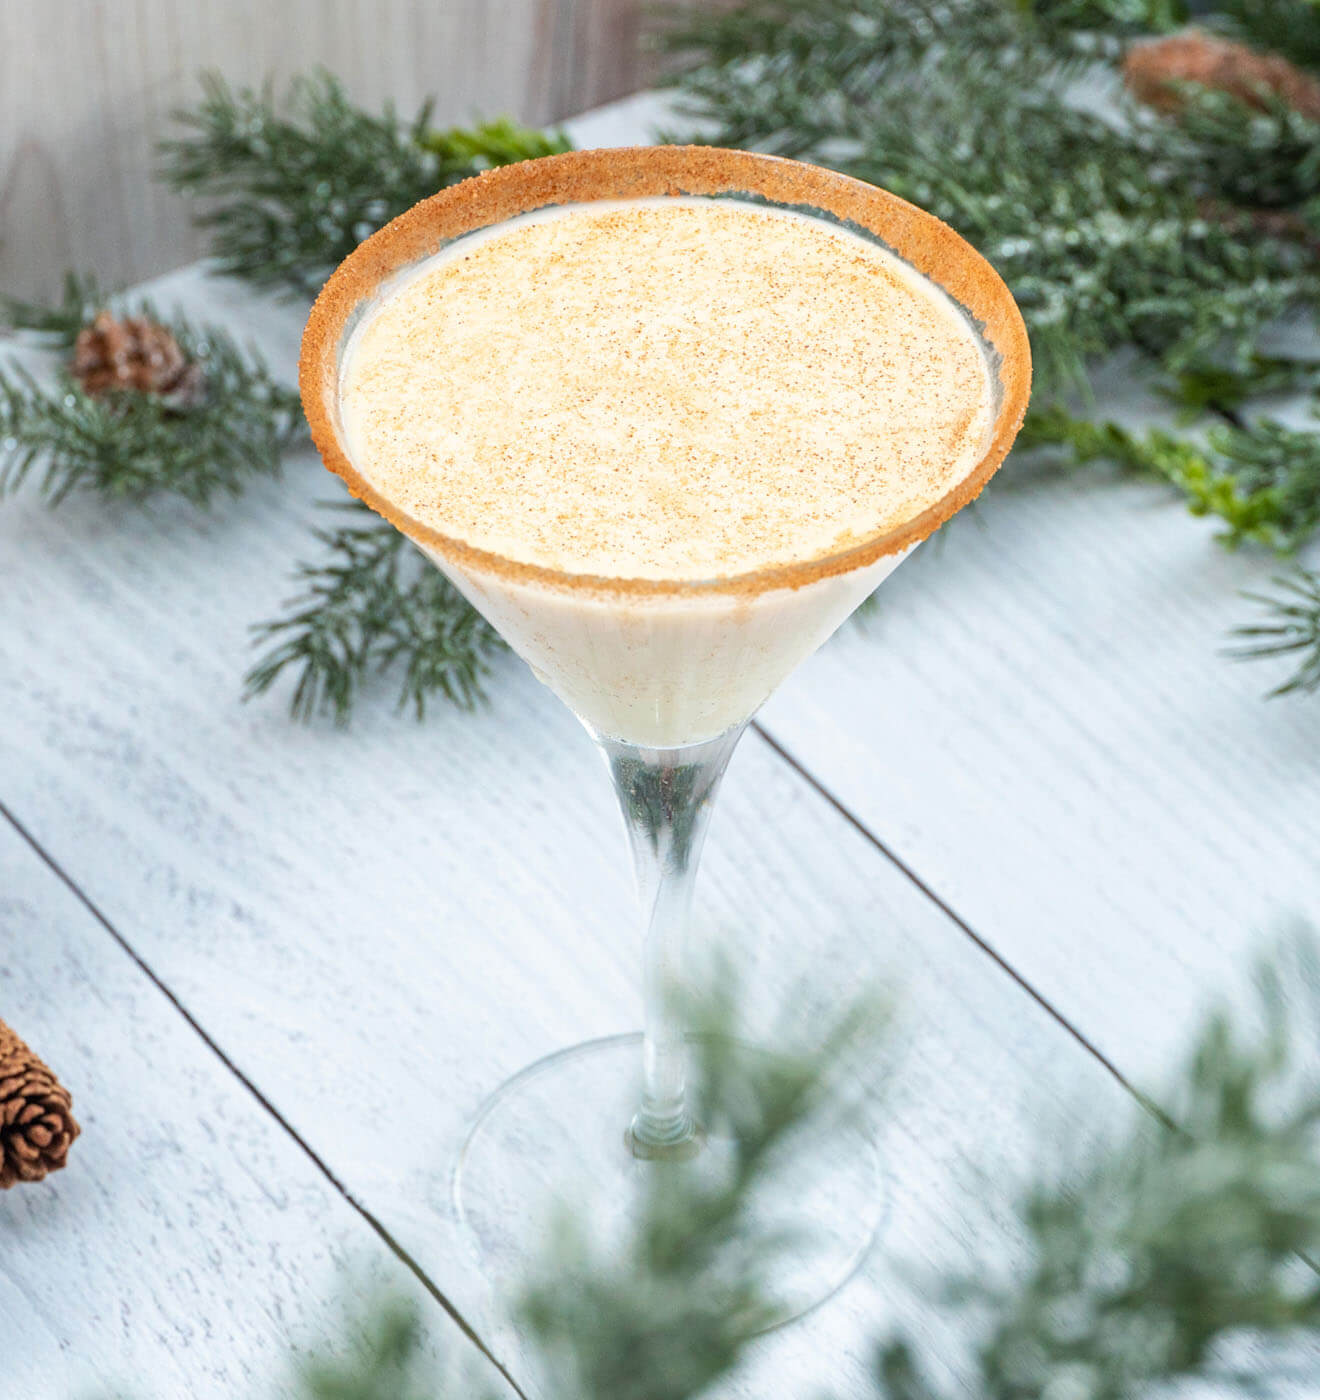 The Nog Martini